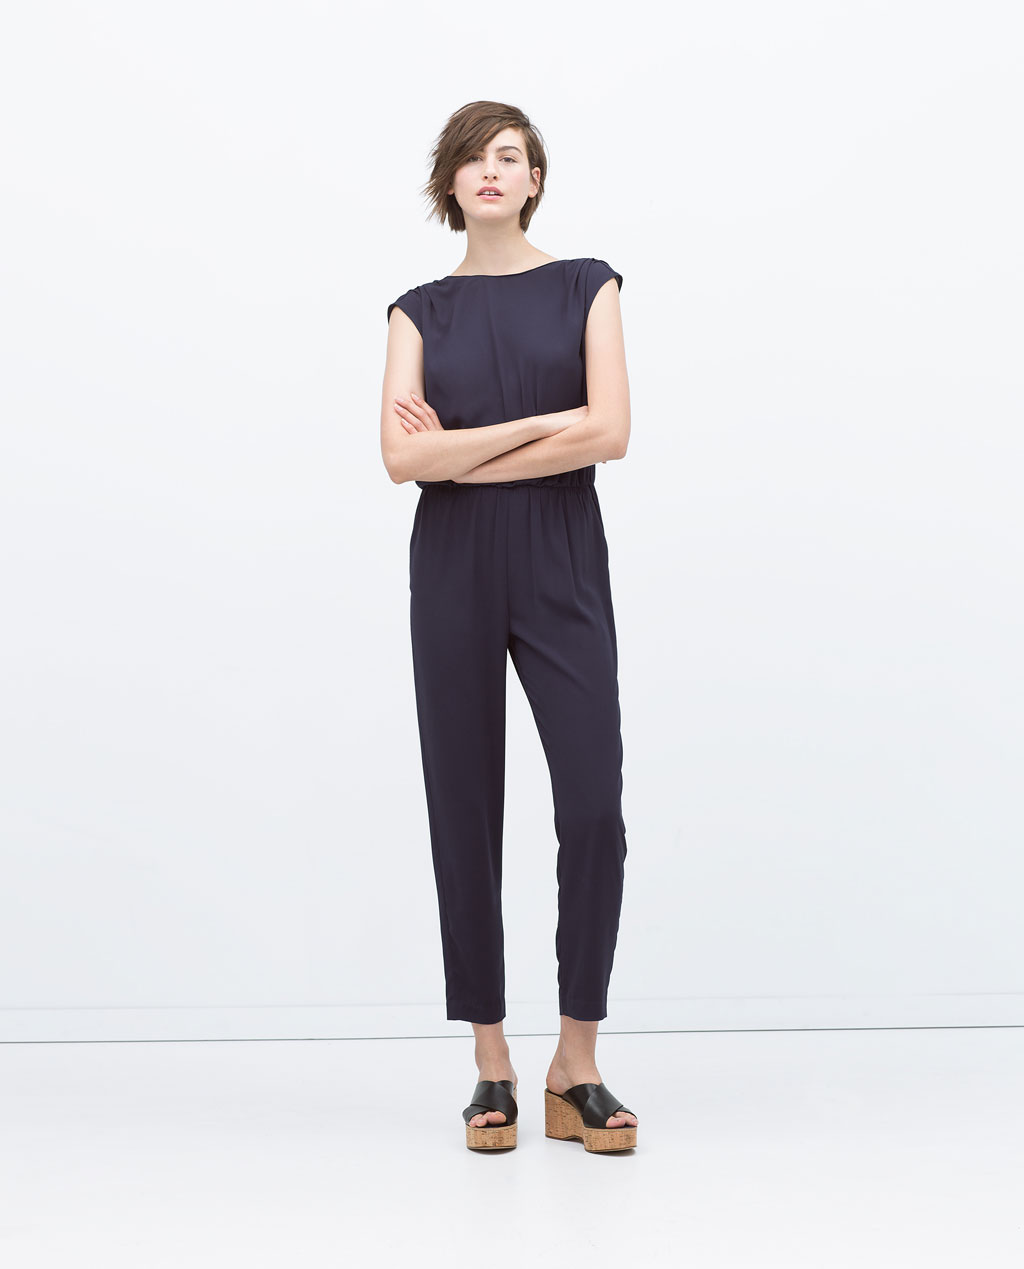 Zara, Long Jumpsuit with Gathered Back £39.99